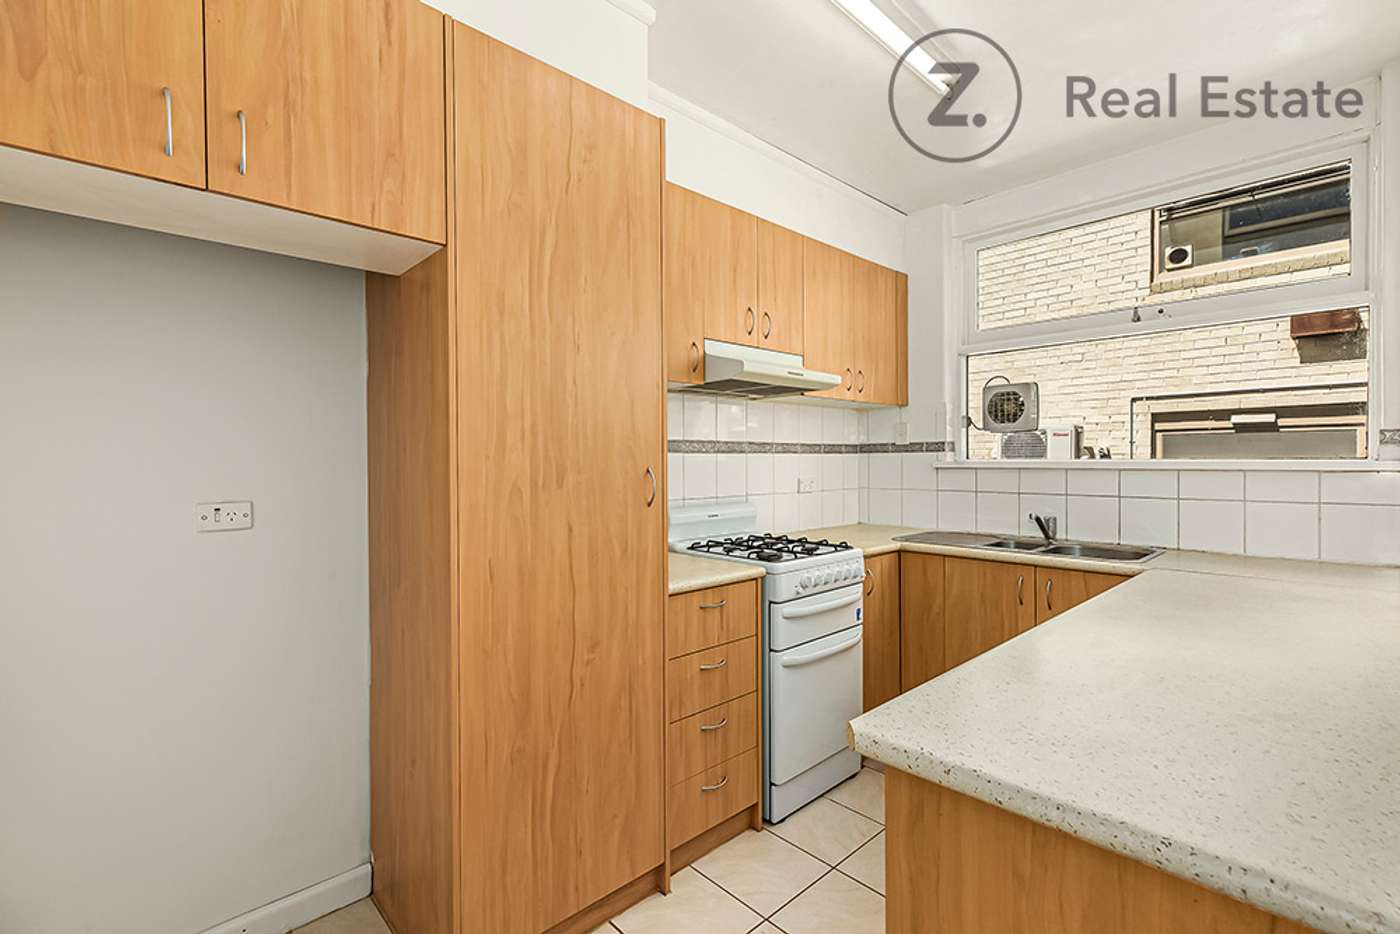 Sixth view of Homely apartment listing, 4/786 Warrigal Road, Malvern East VIC 3145